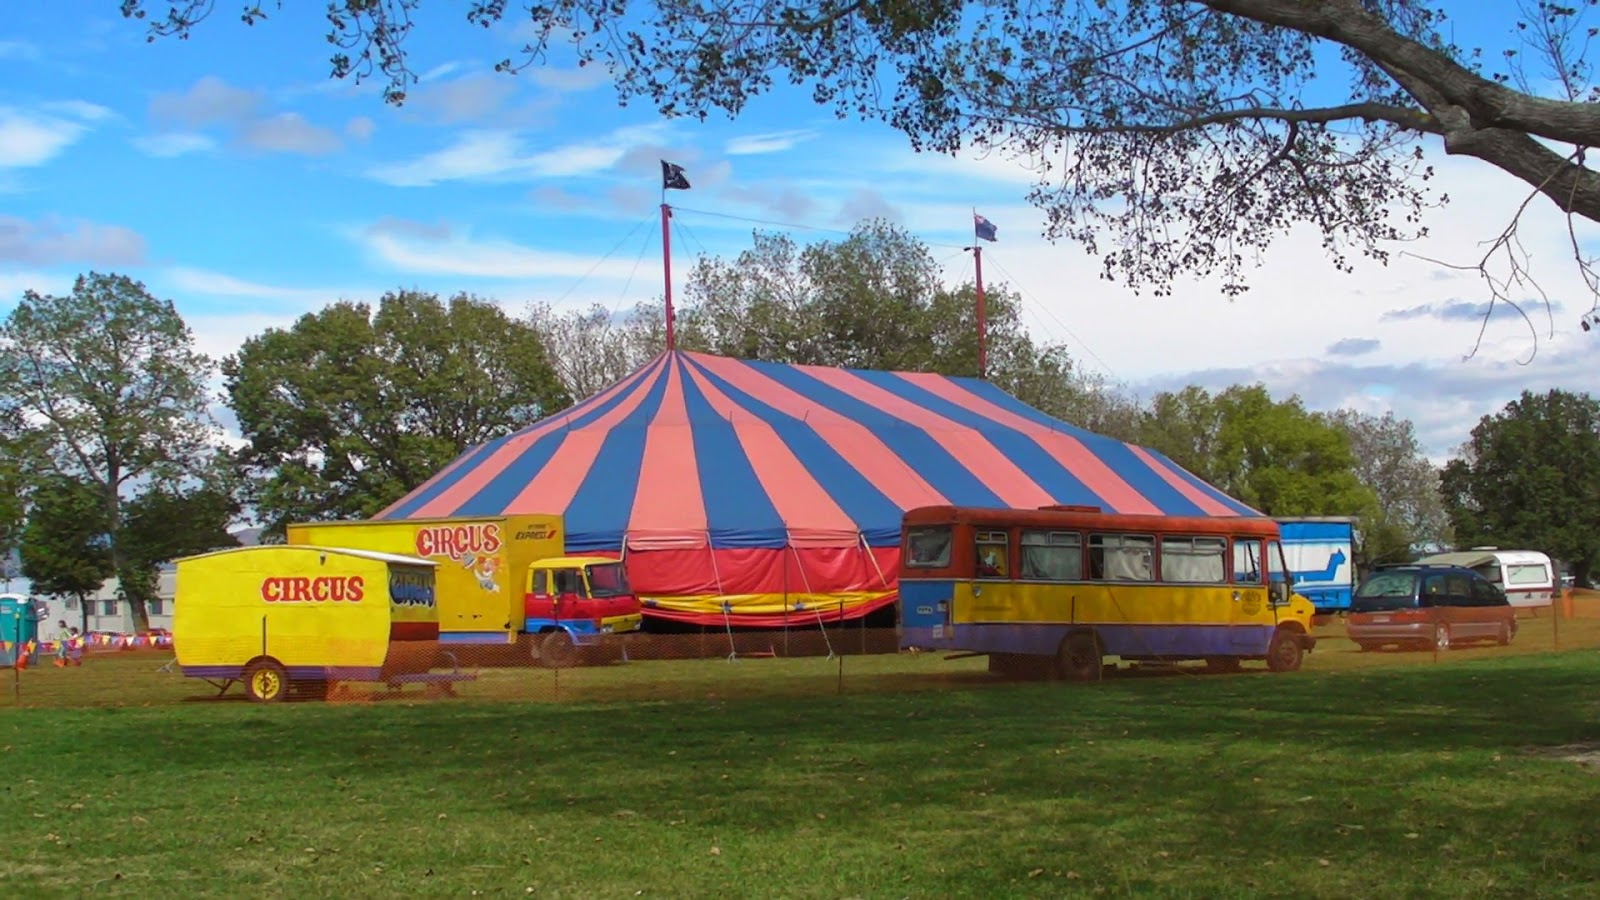 A photo of a Circus Tent Palmerston North New Zealand 2015 & James Fagan History Blog: The History of the Circus in New Zealand